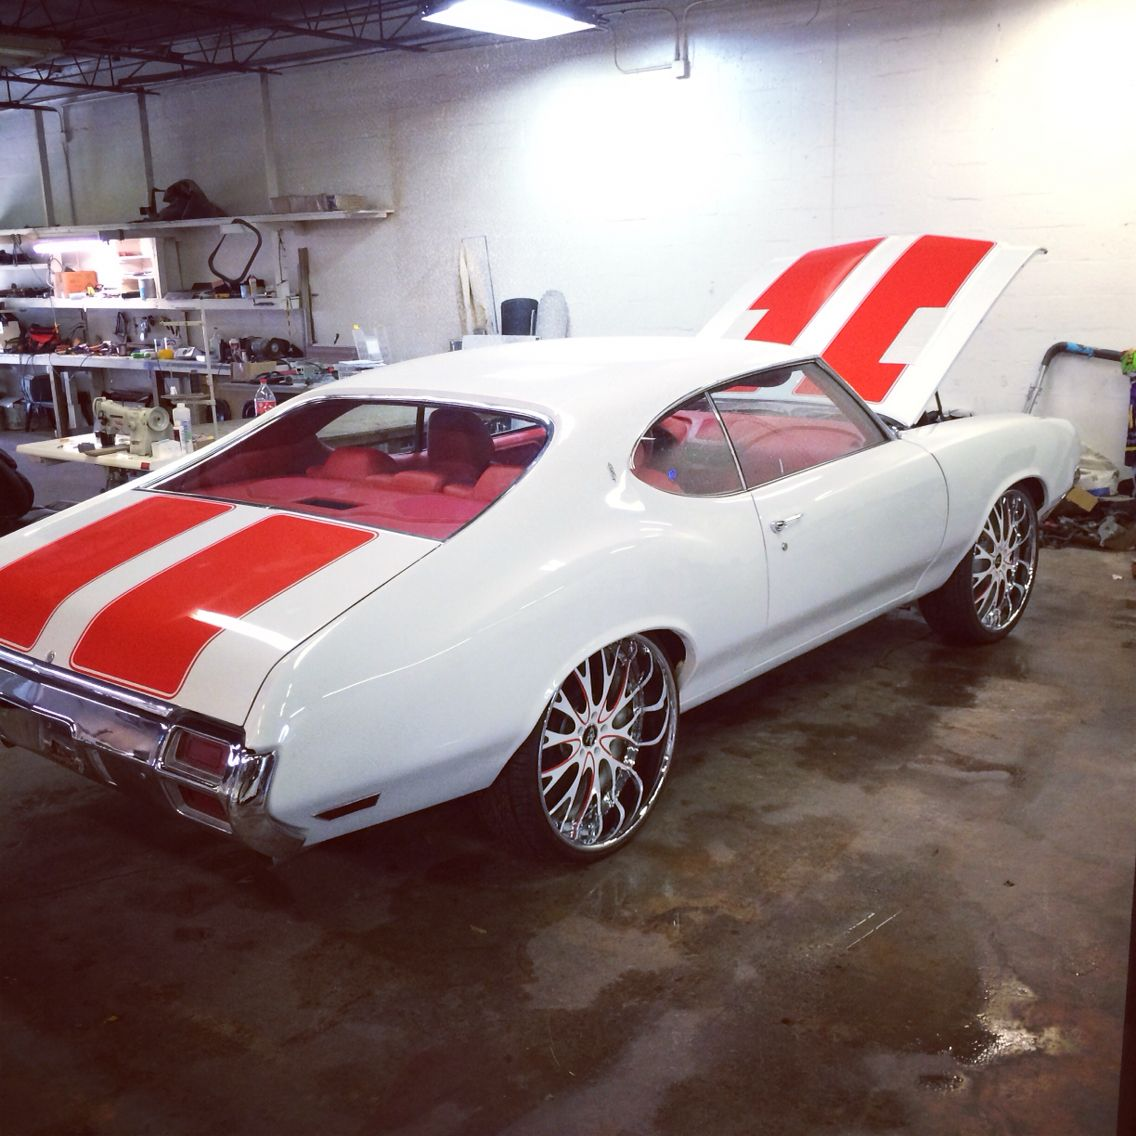 1971 Cutlass S 24 Inch Wheels Staggered New Paint New